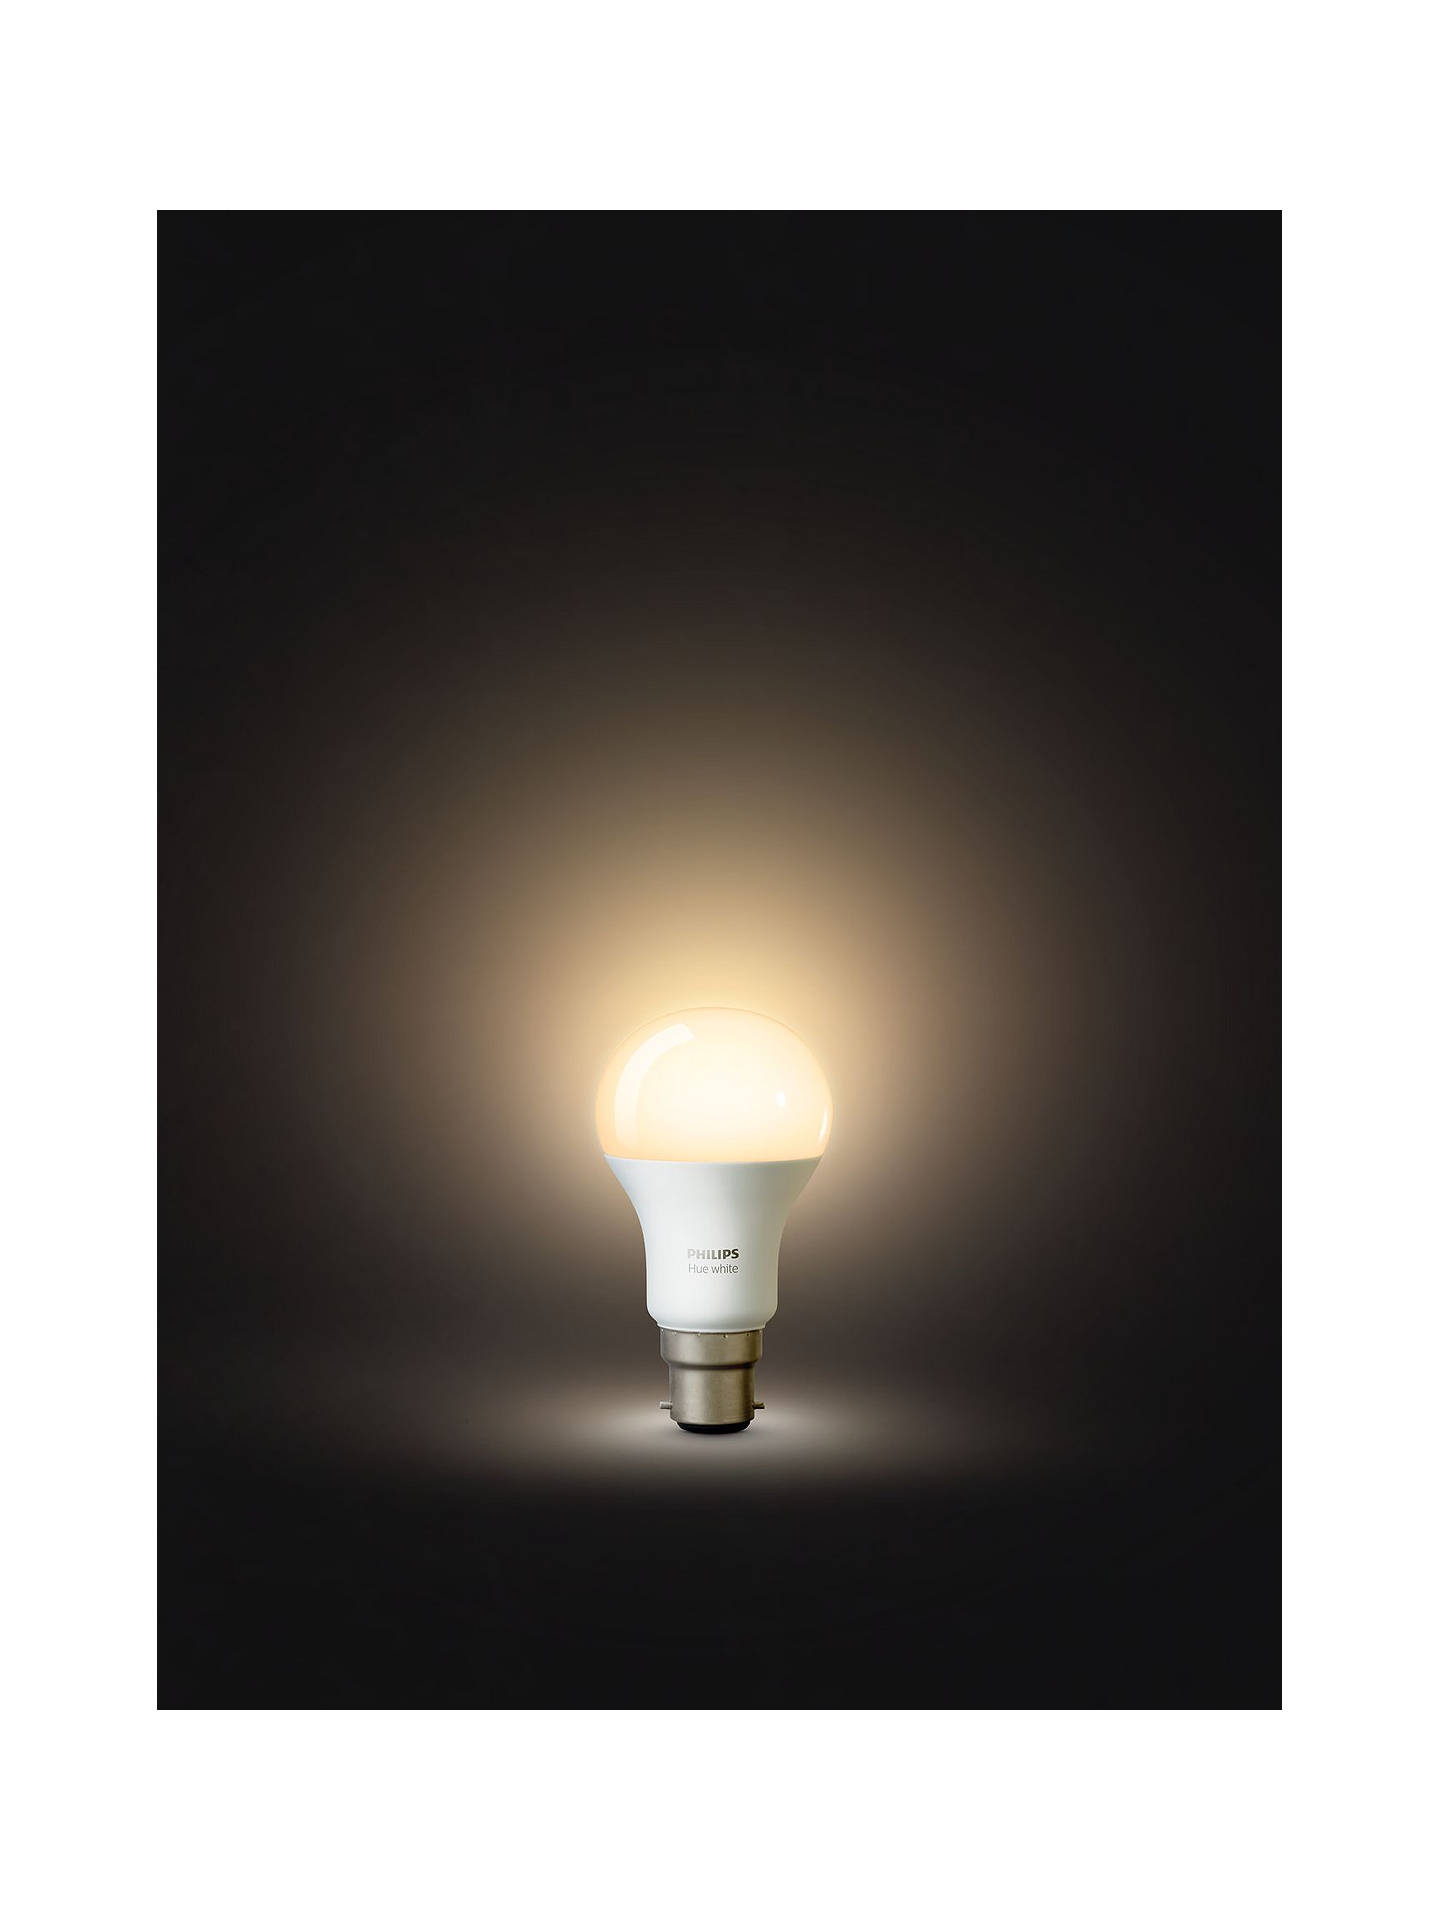 BuyPhilips Hue White 9W A60 Smart Bulb, B22 Fitting Online at johnlewis.com